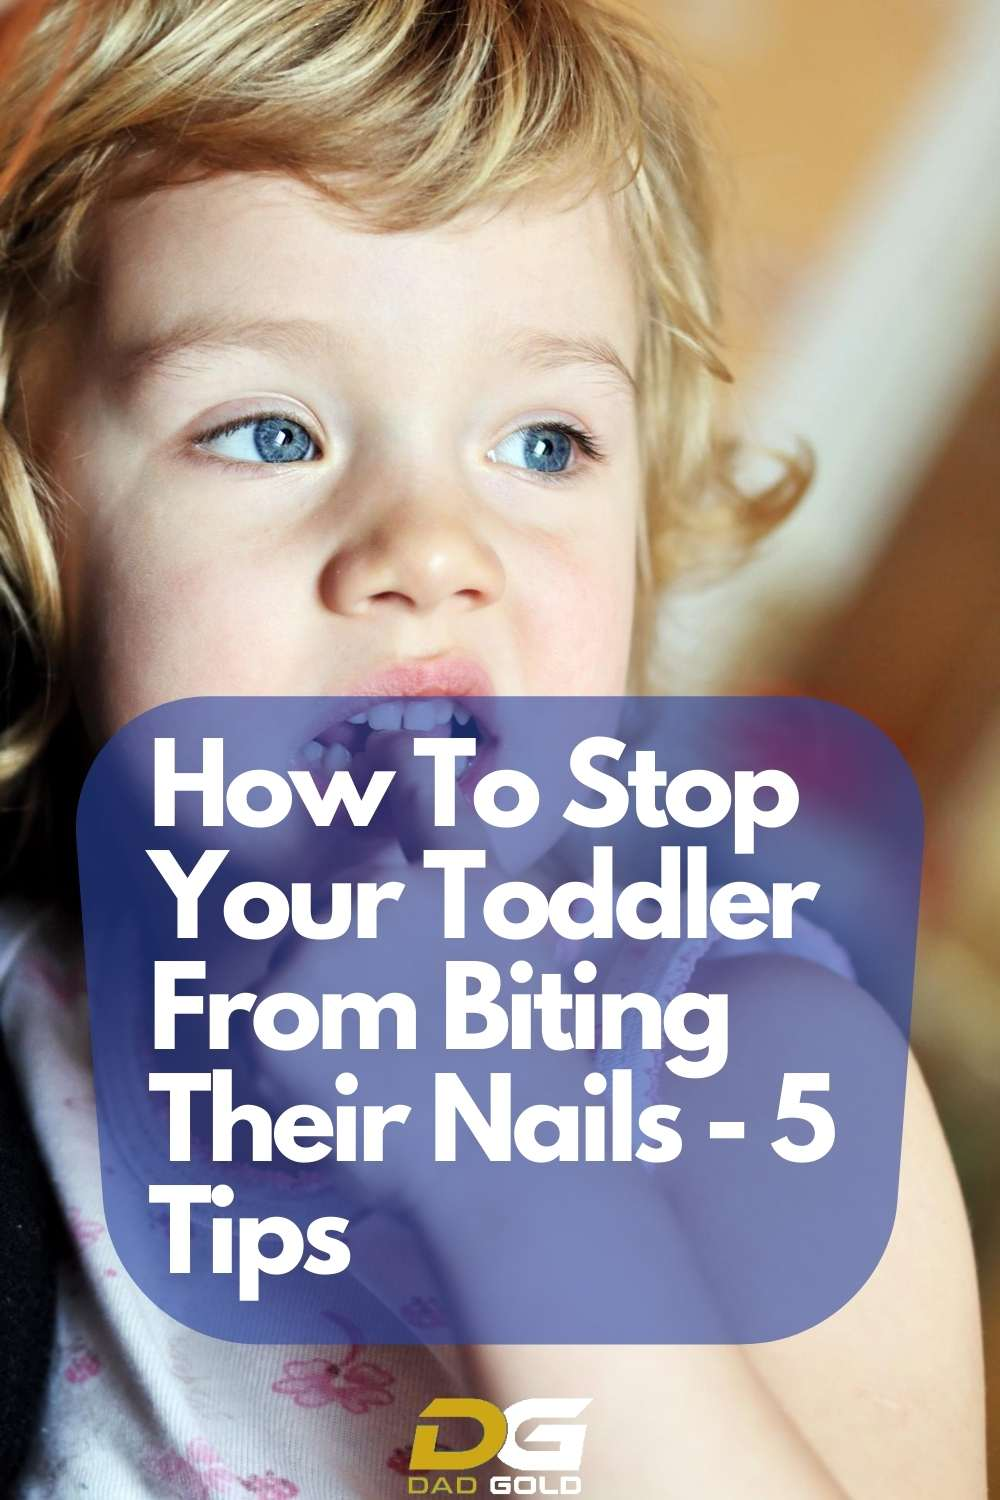 How To Stop Your Toddler From Biting Their Nails - 5 Tips - dadgold - parenting tips